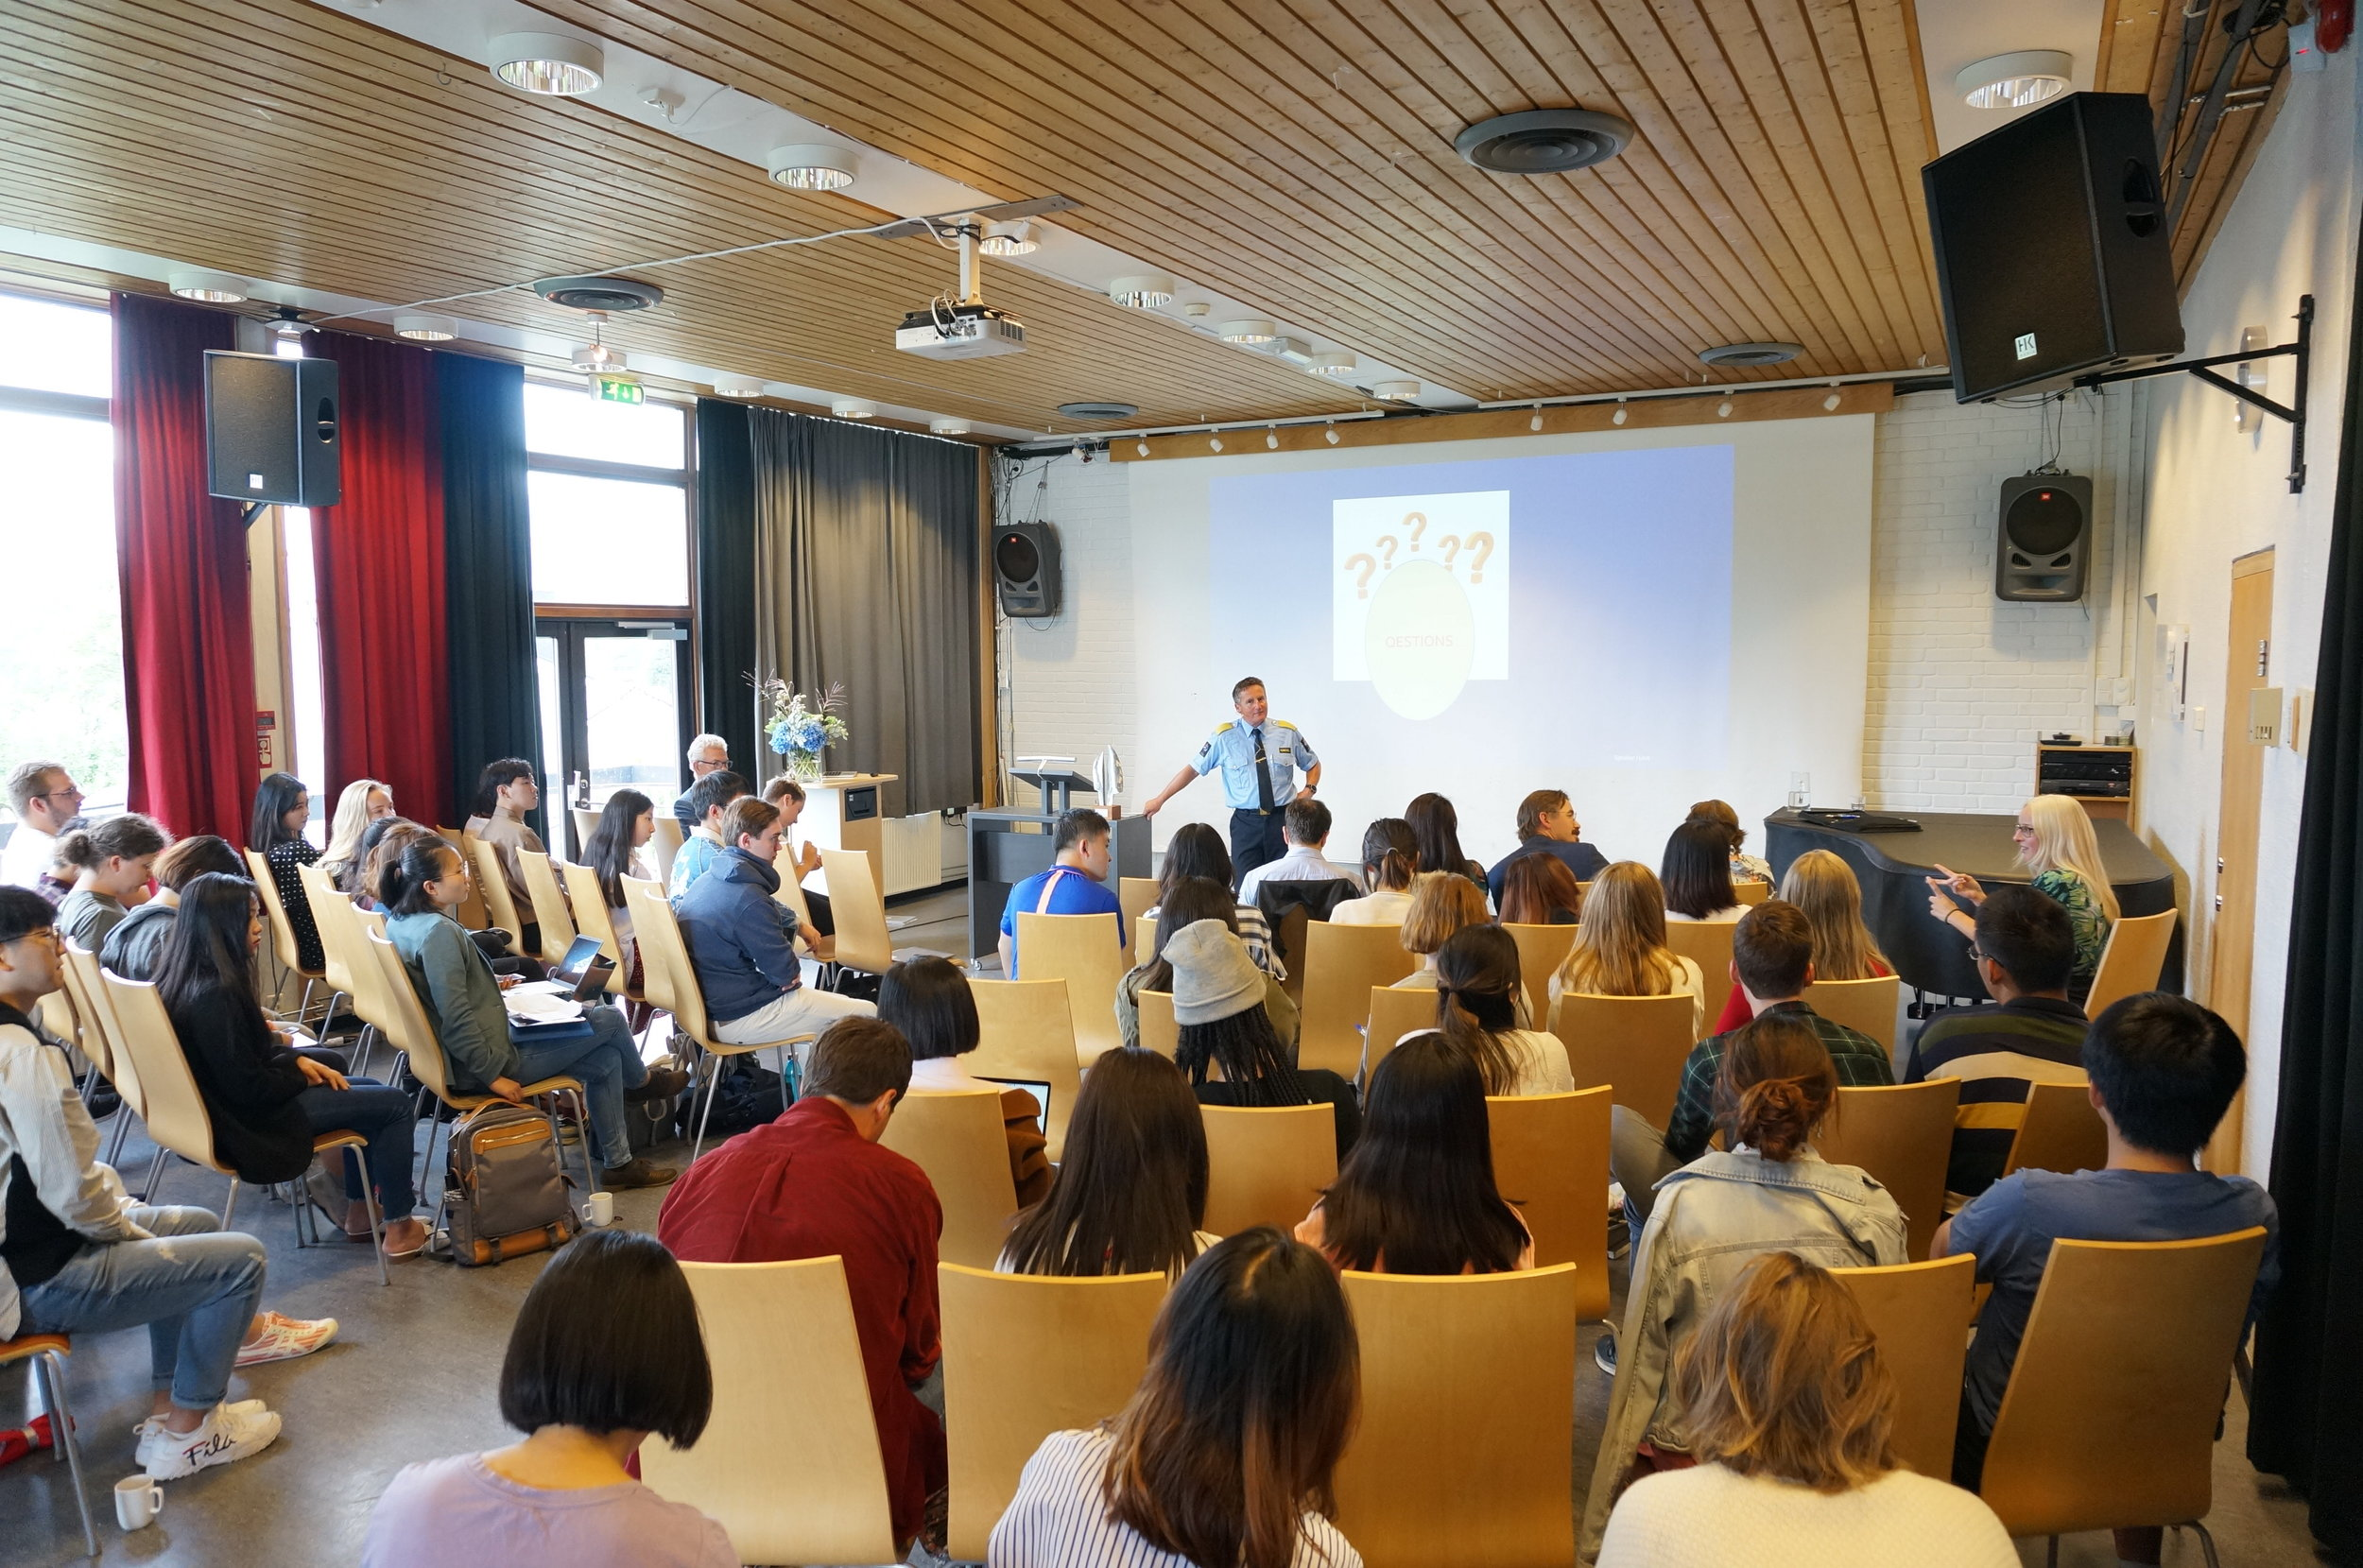 Q&A on Norwegian perspectives on crime and punishment